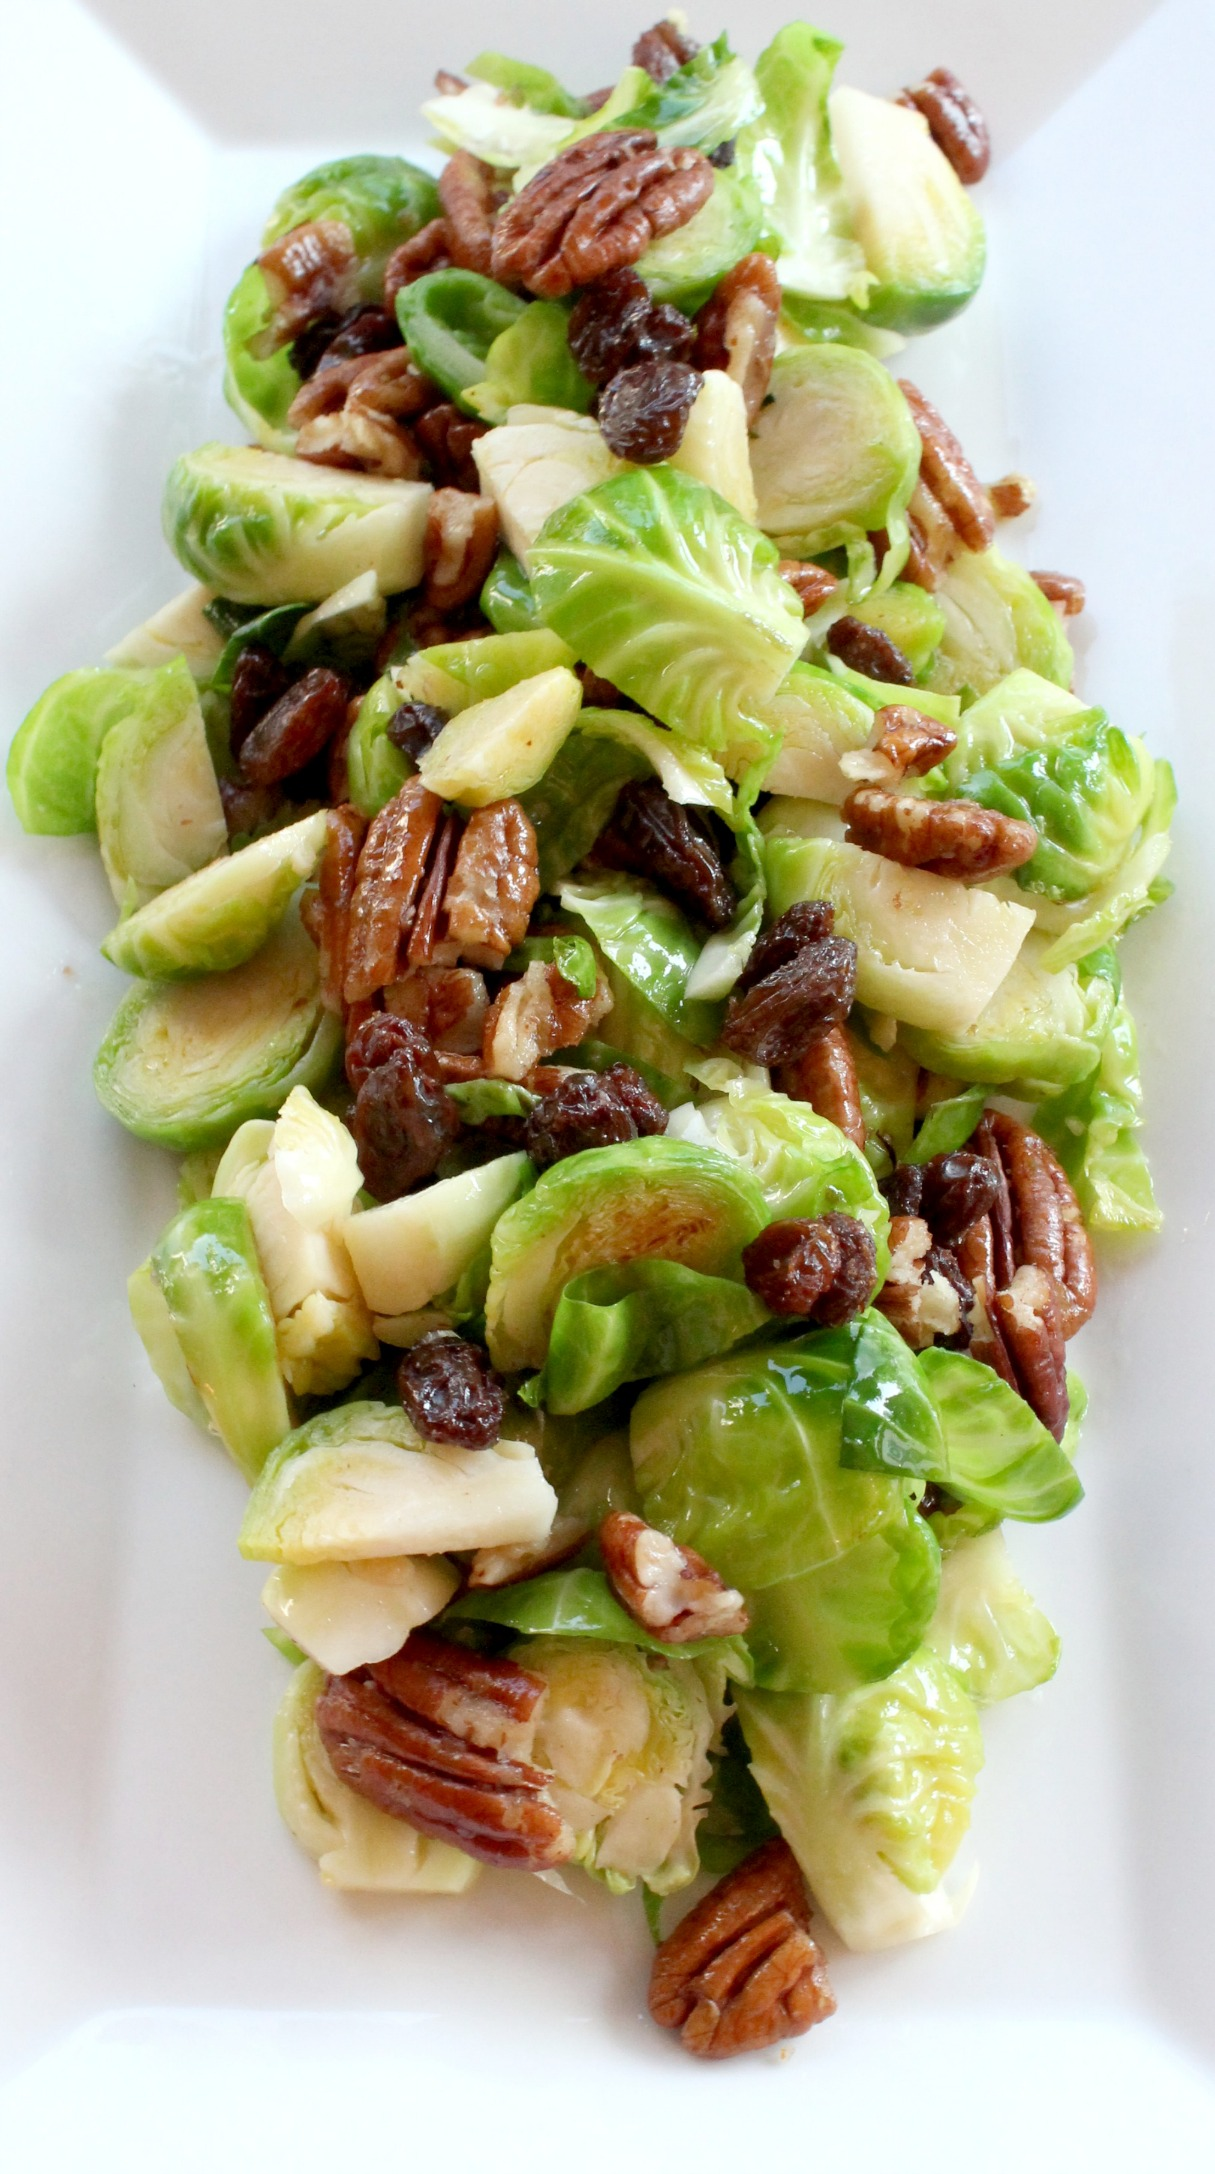 Looking for an easy but appealing appetizer? This brussel sprout salad recipe is a great side dish and perfect for entertaining.